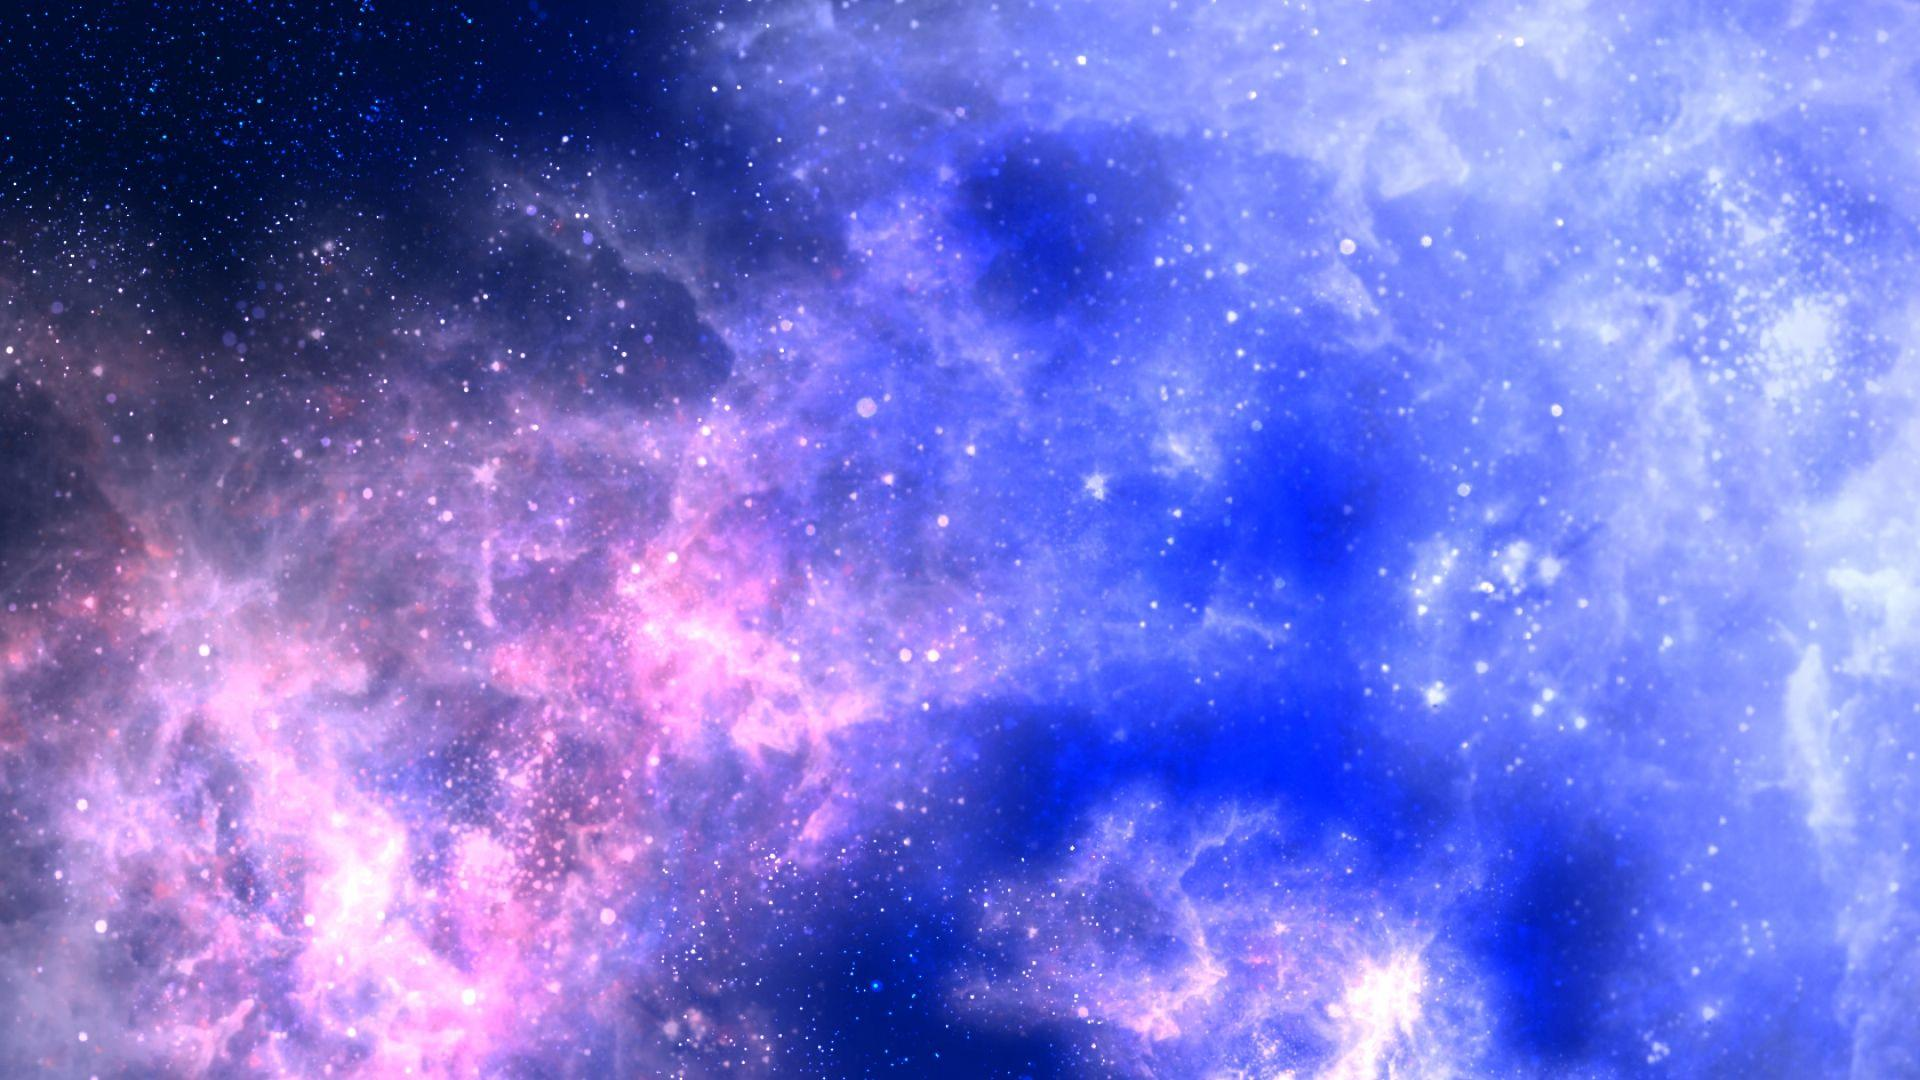 Galaxy Backgrounds Hd Wallpaper Cave